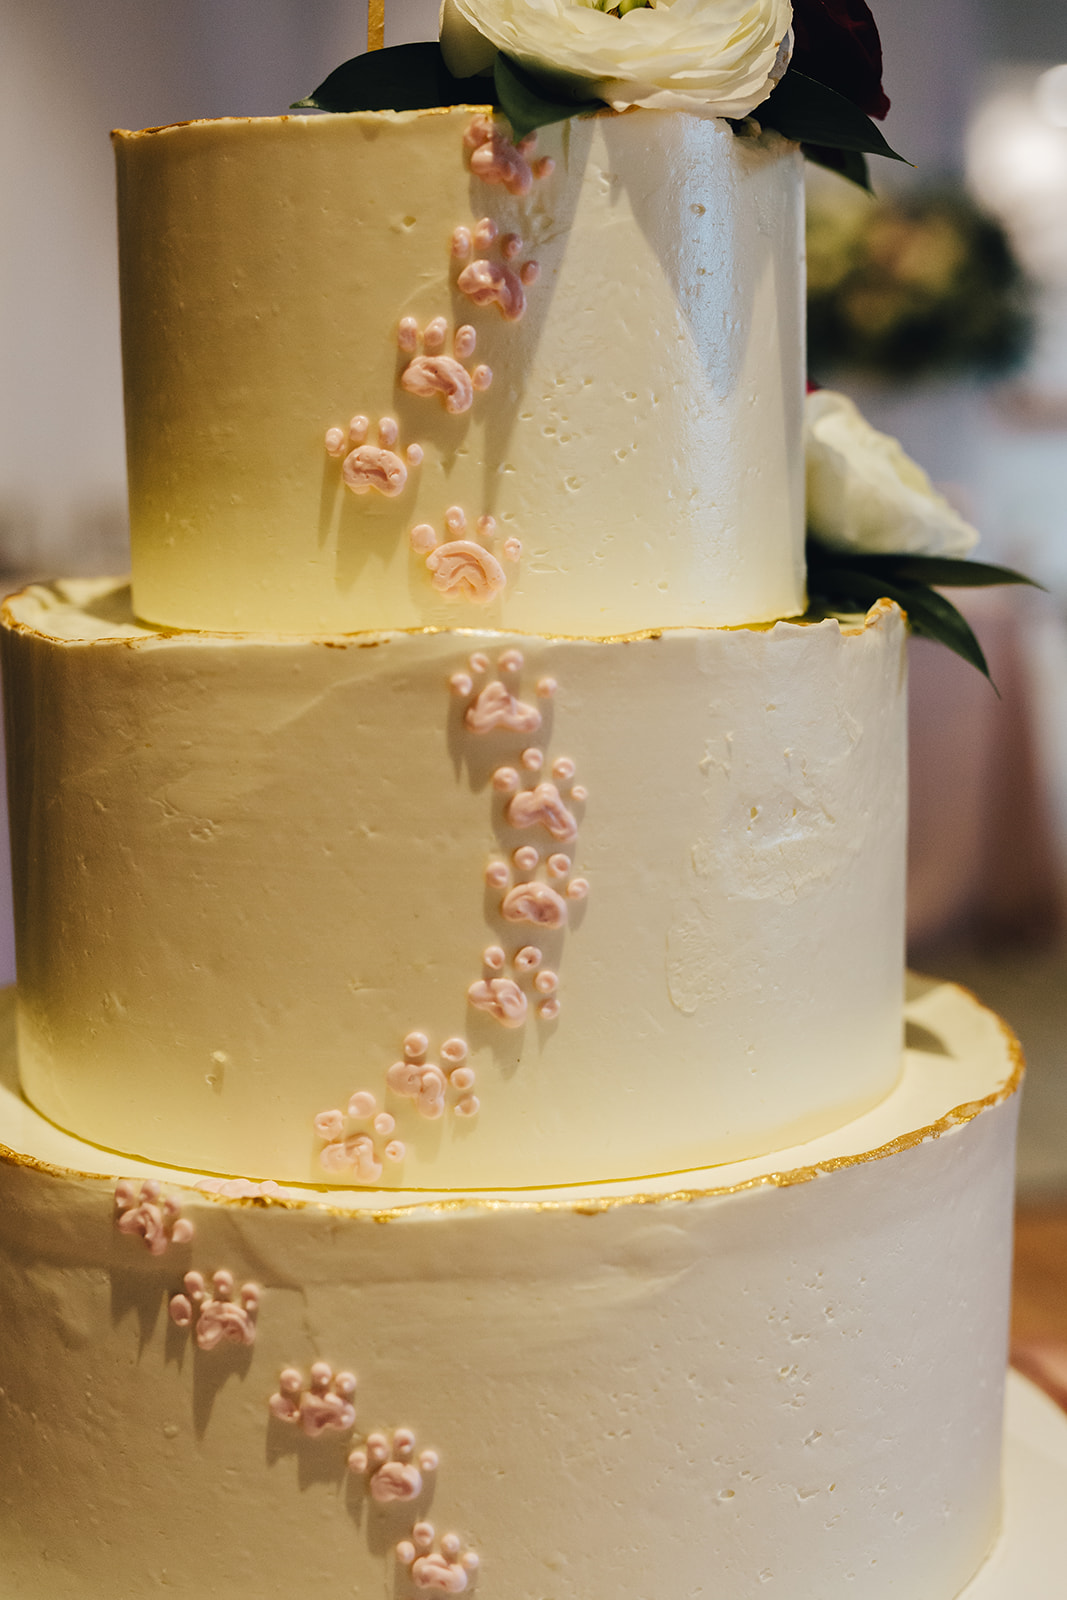 West Bay Beach wedding cake with paw prints on the side